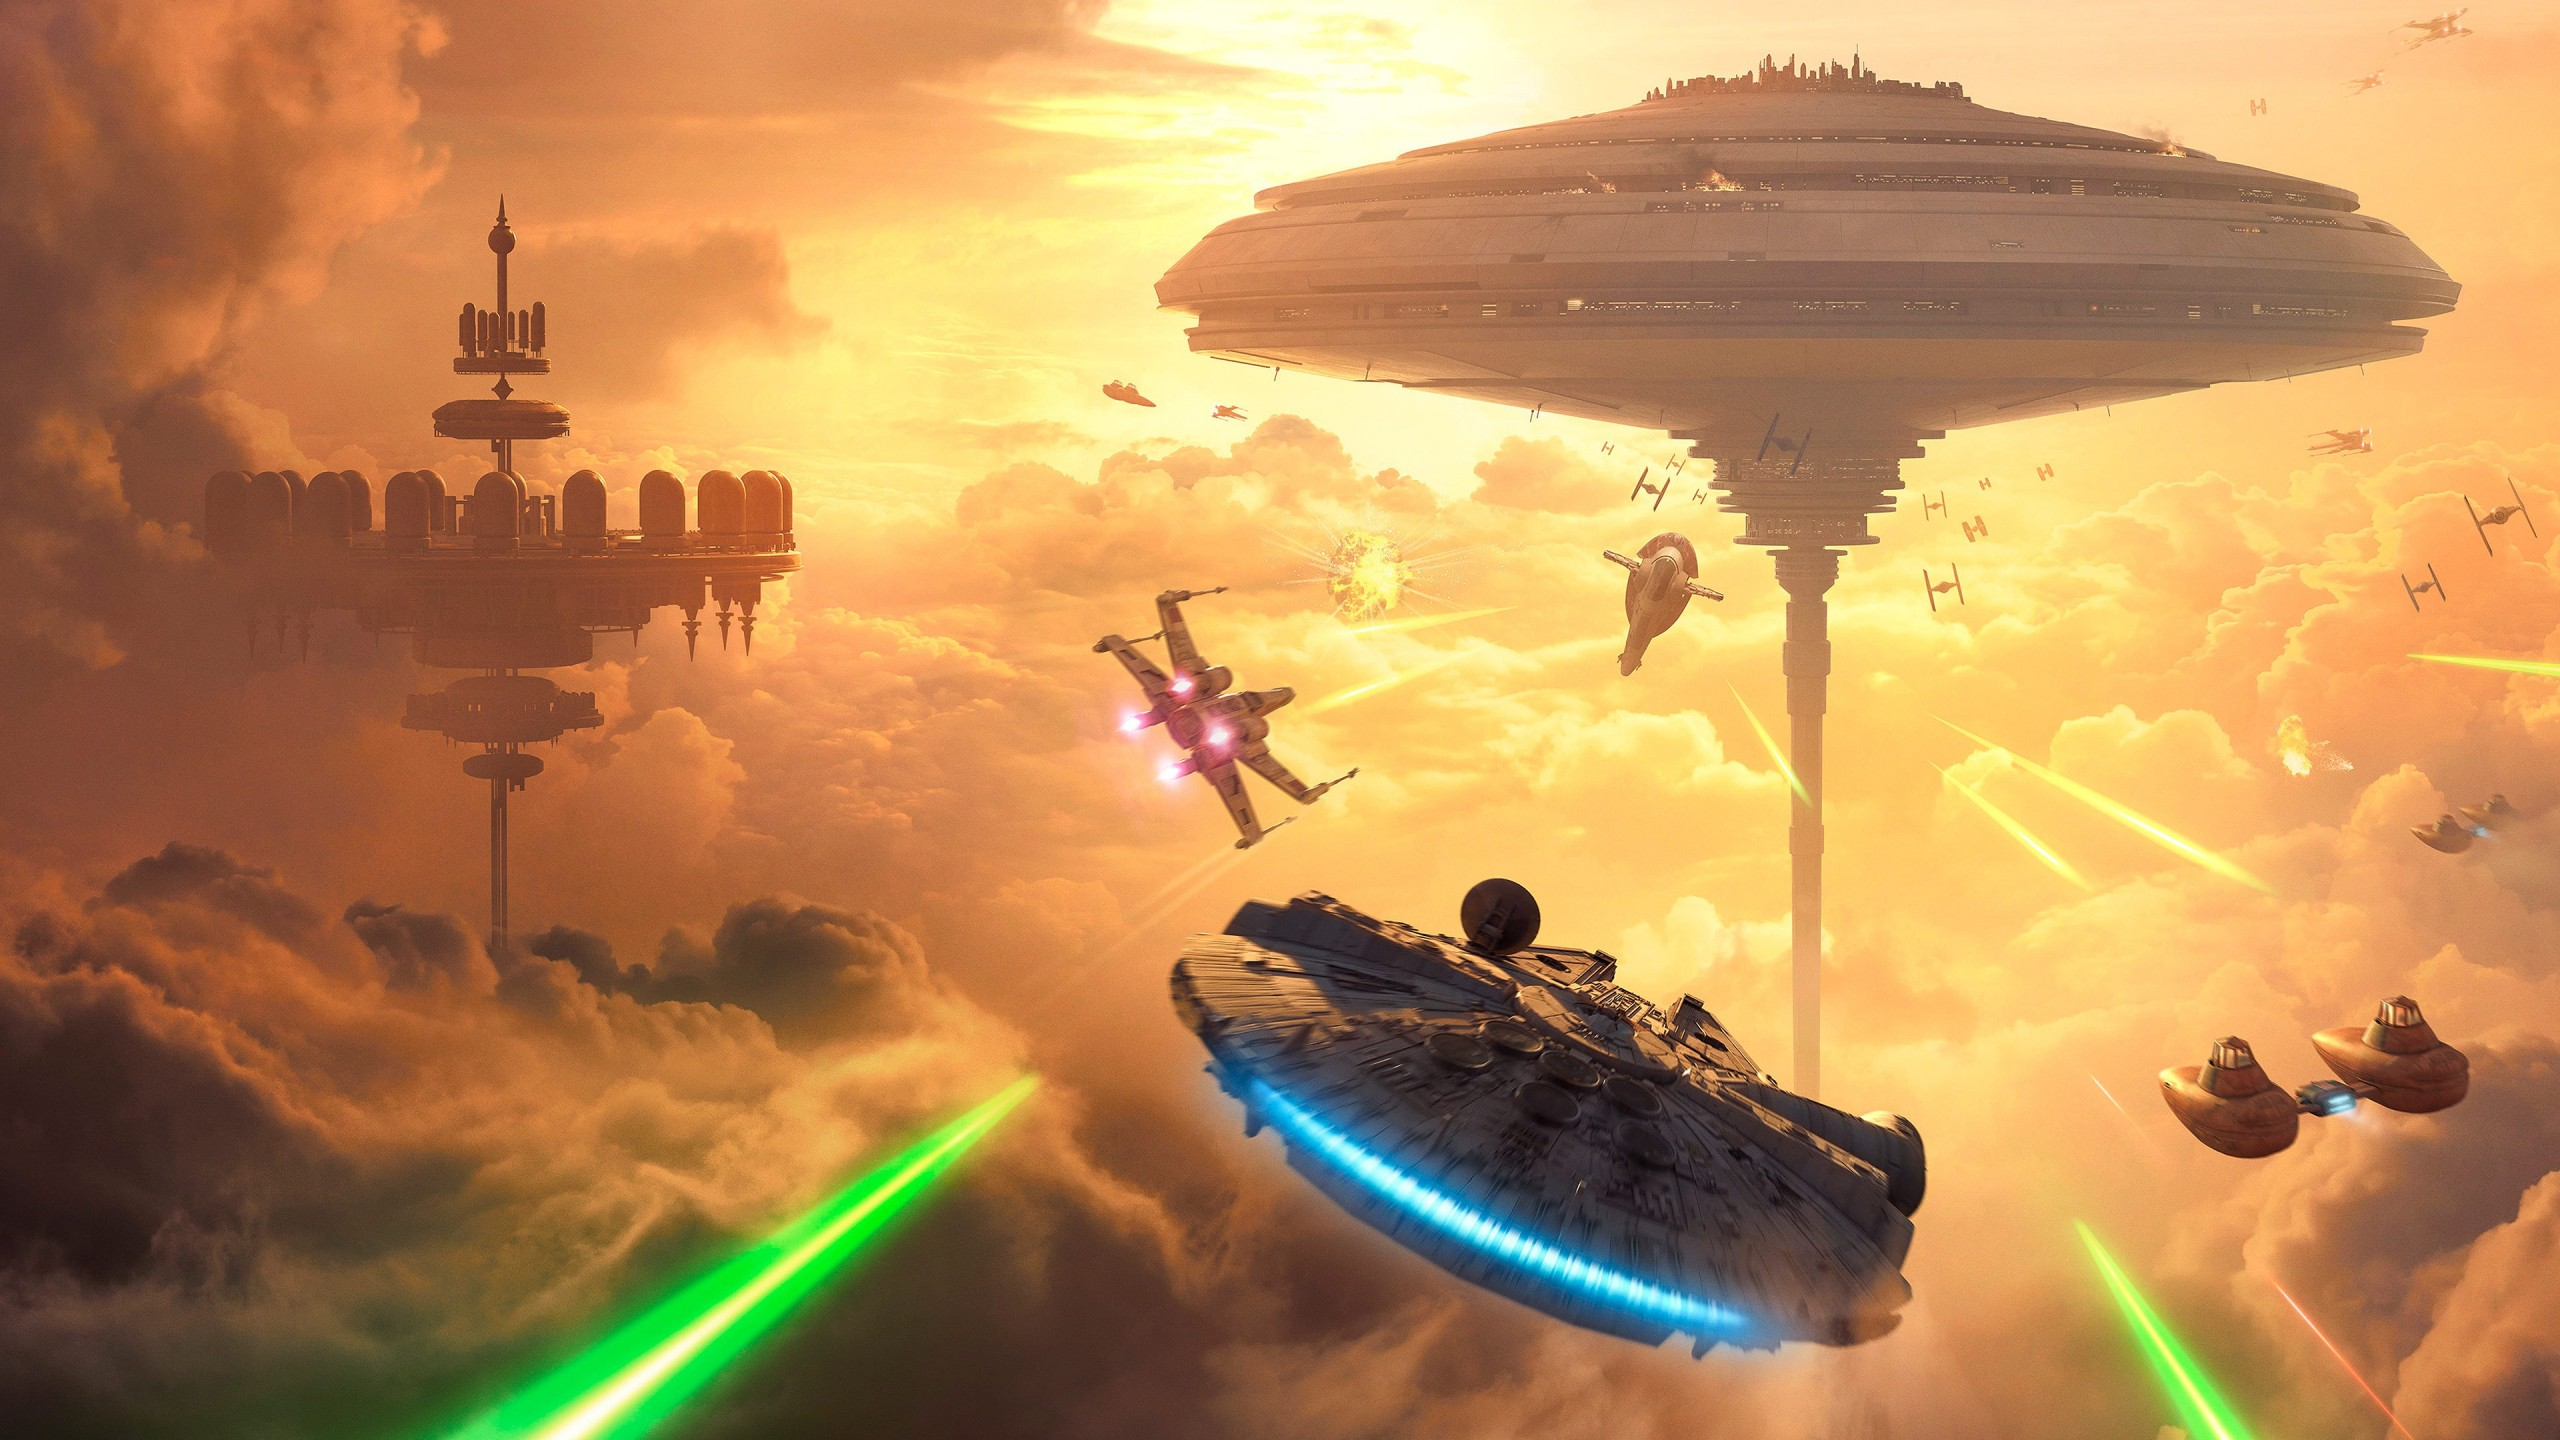 Star Wars Battlefront Art 3 2560x1440 Wallpaper Thewallpaperkid Com